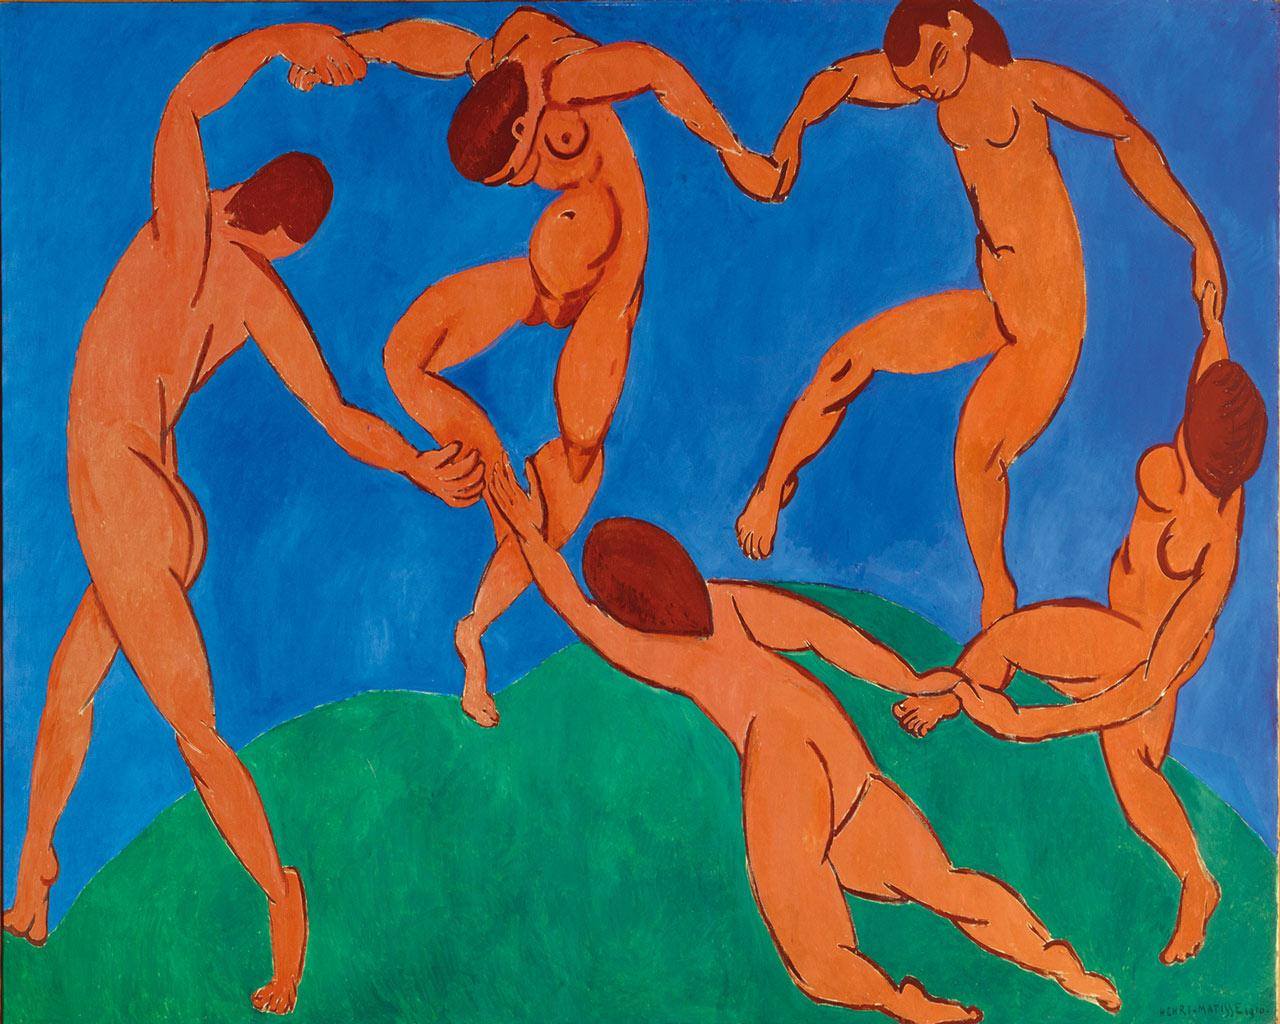 Henri Matisse - The Dance Wallpaper #2 1280 x 1024